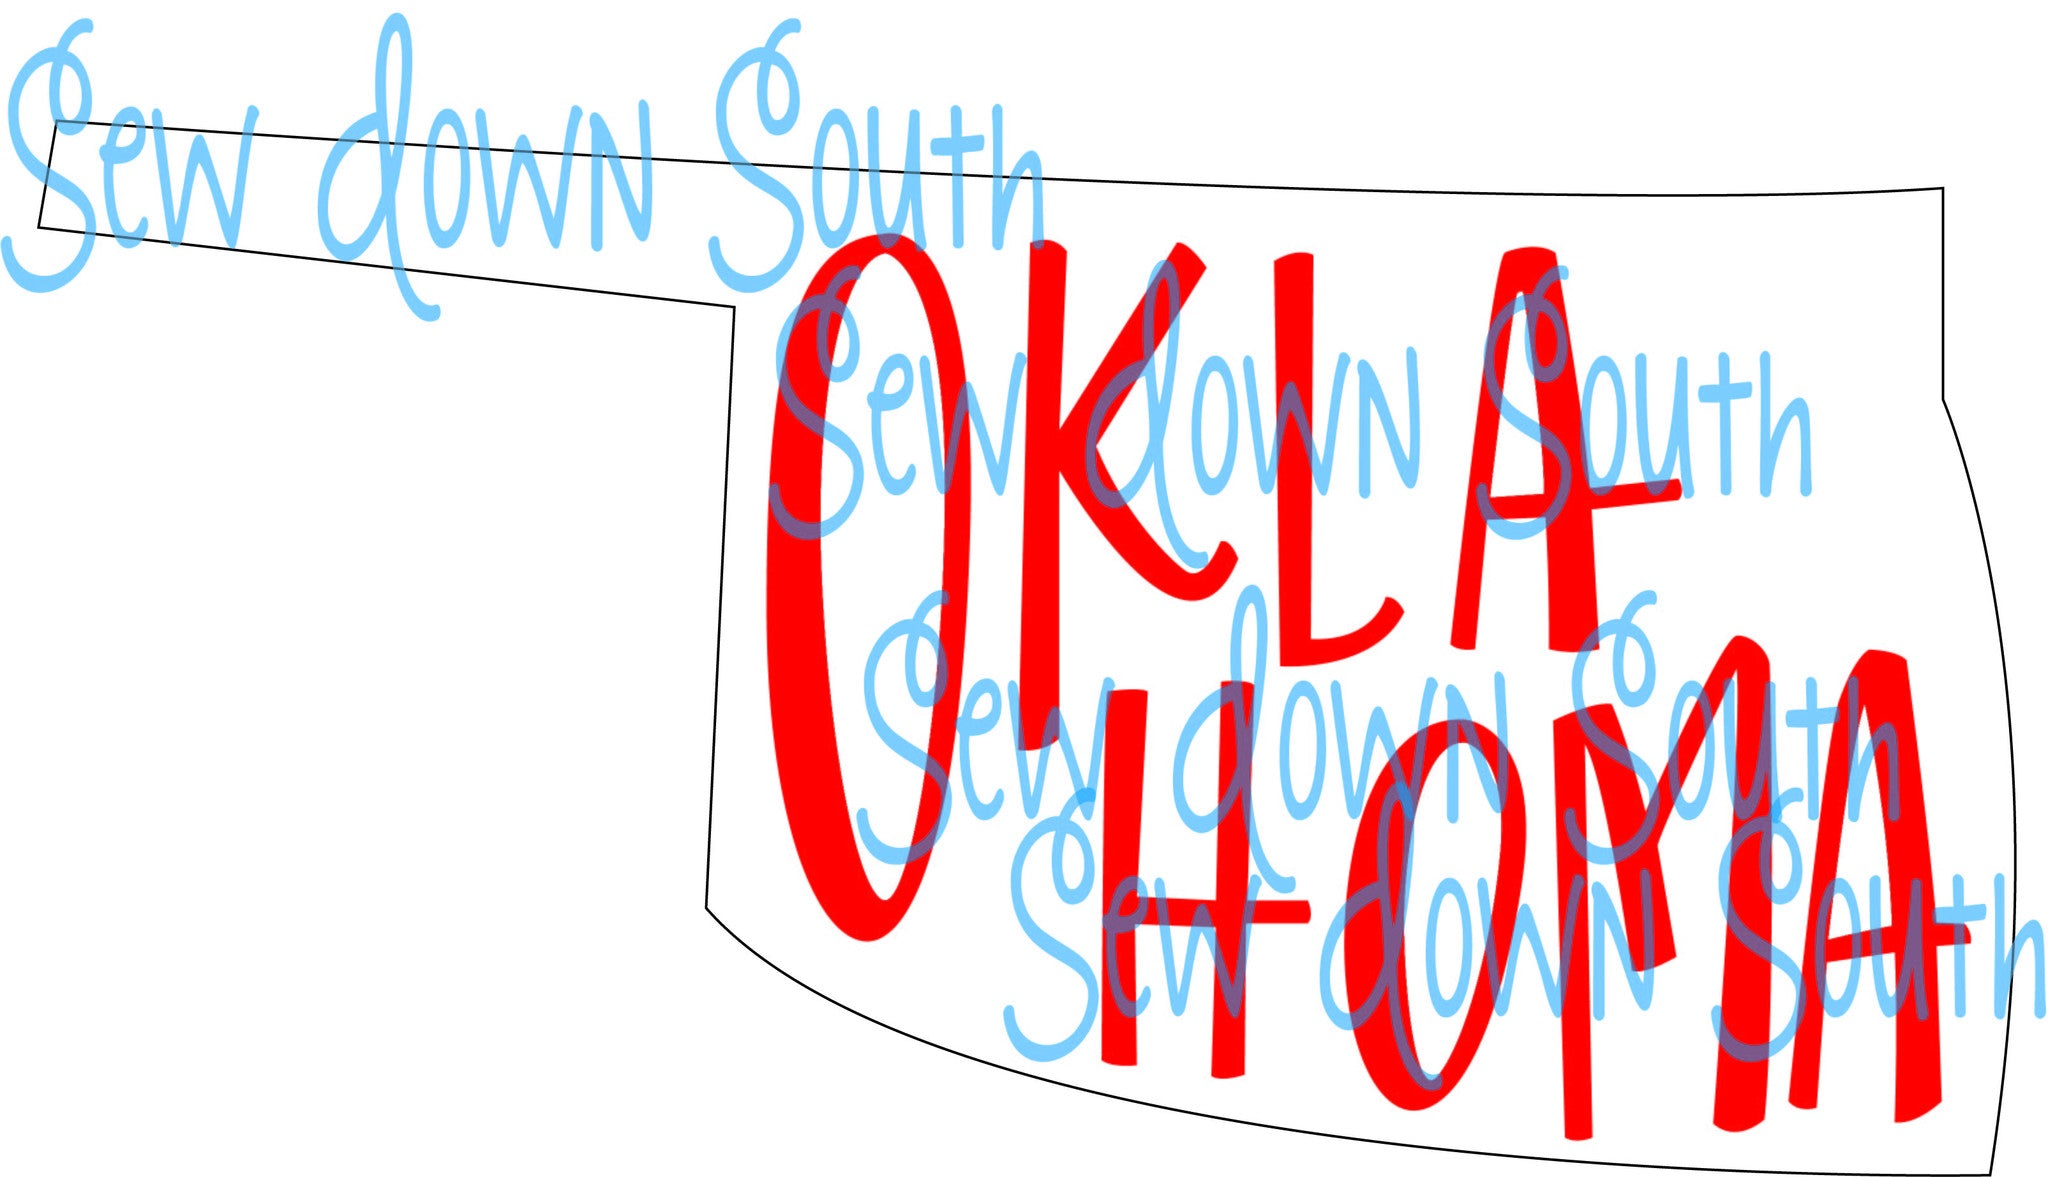 State of Oklahoma SVG Cut File